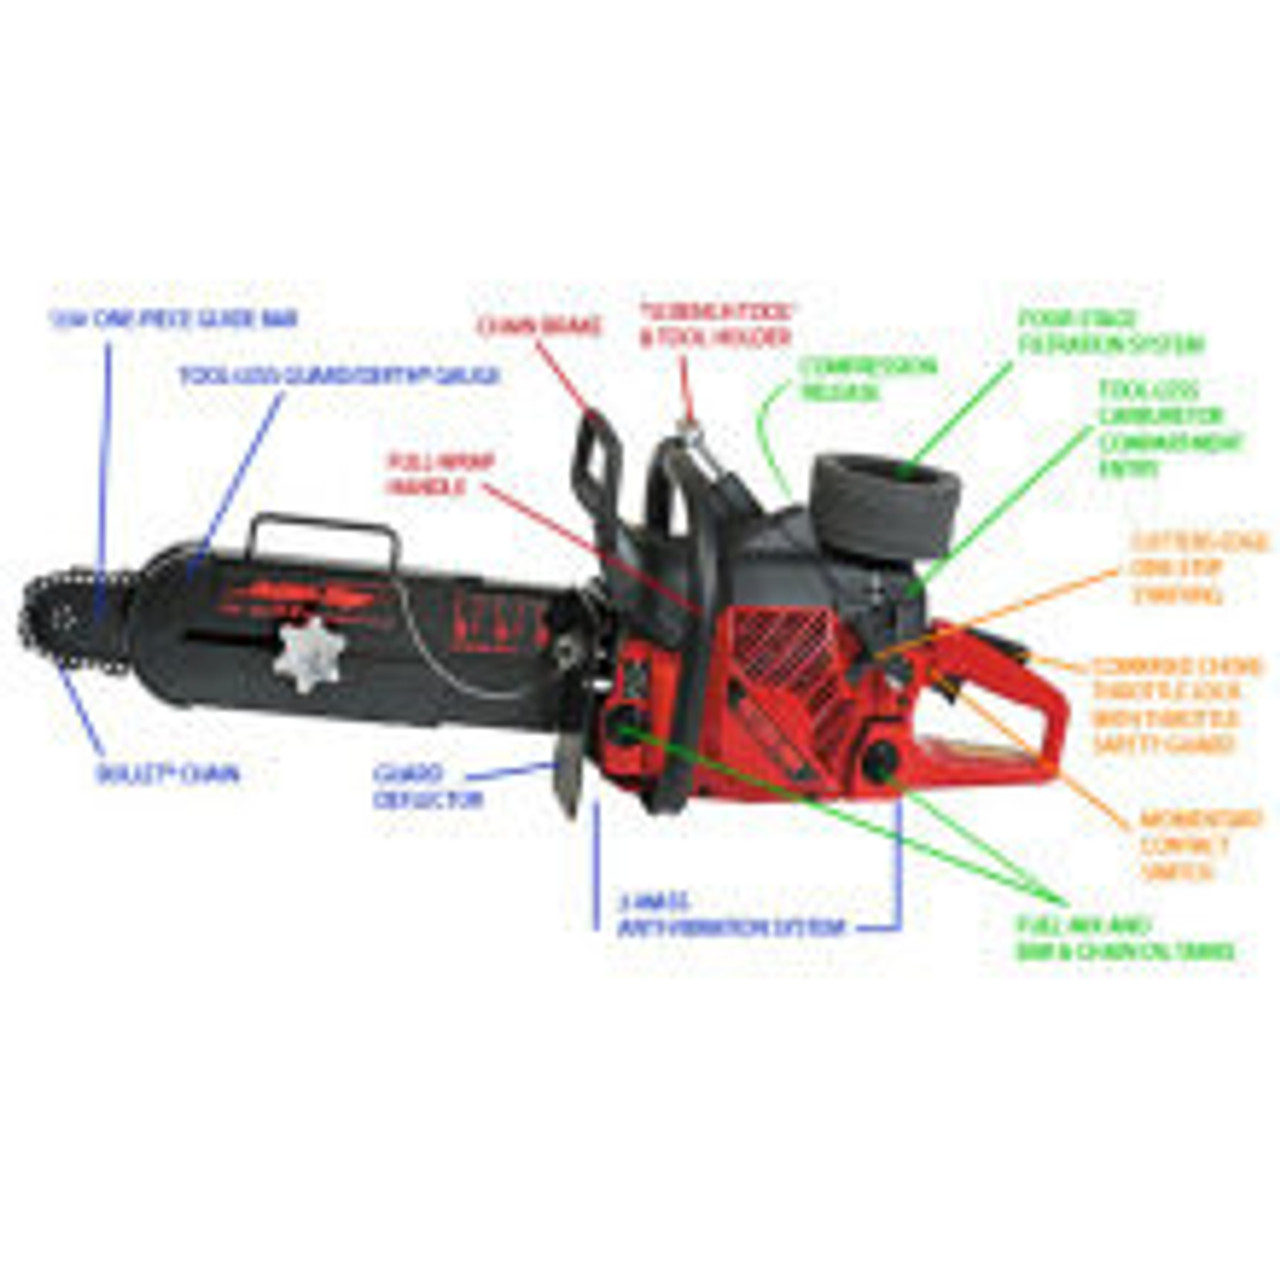 Cutters Edge MULTI-CUT Fire Rescue Saw, 20 Inch